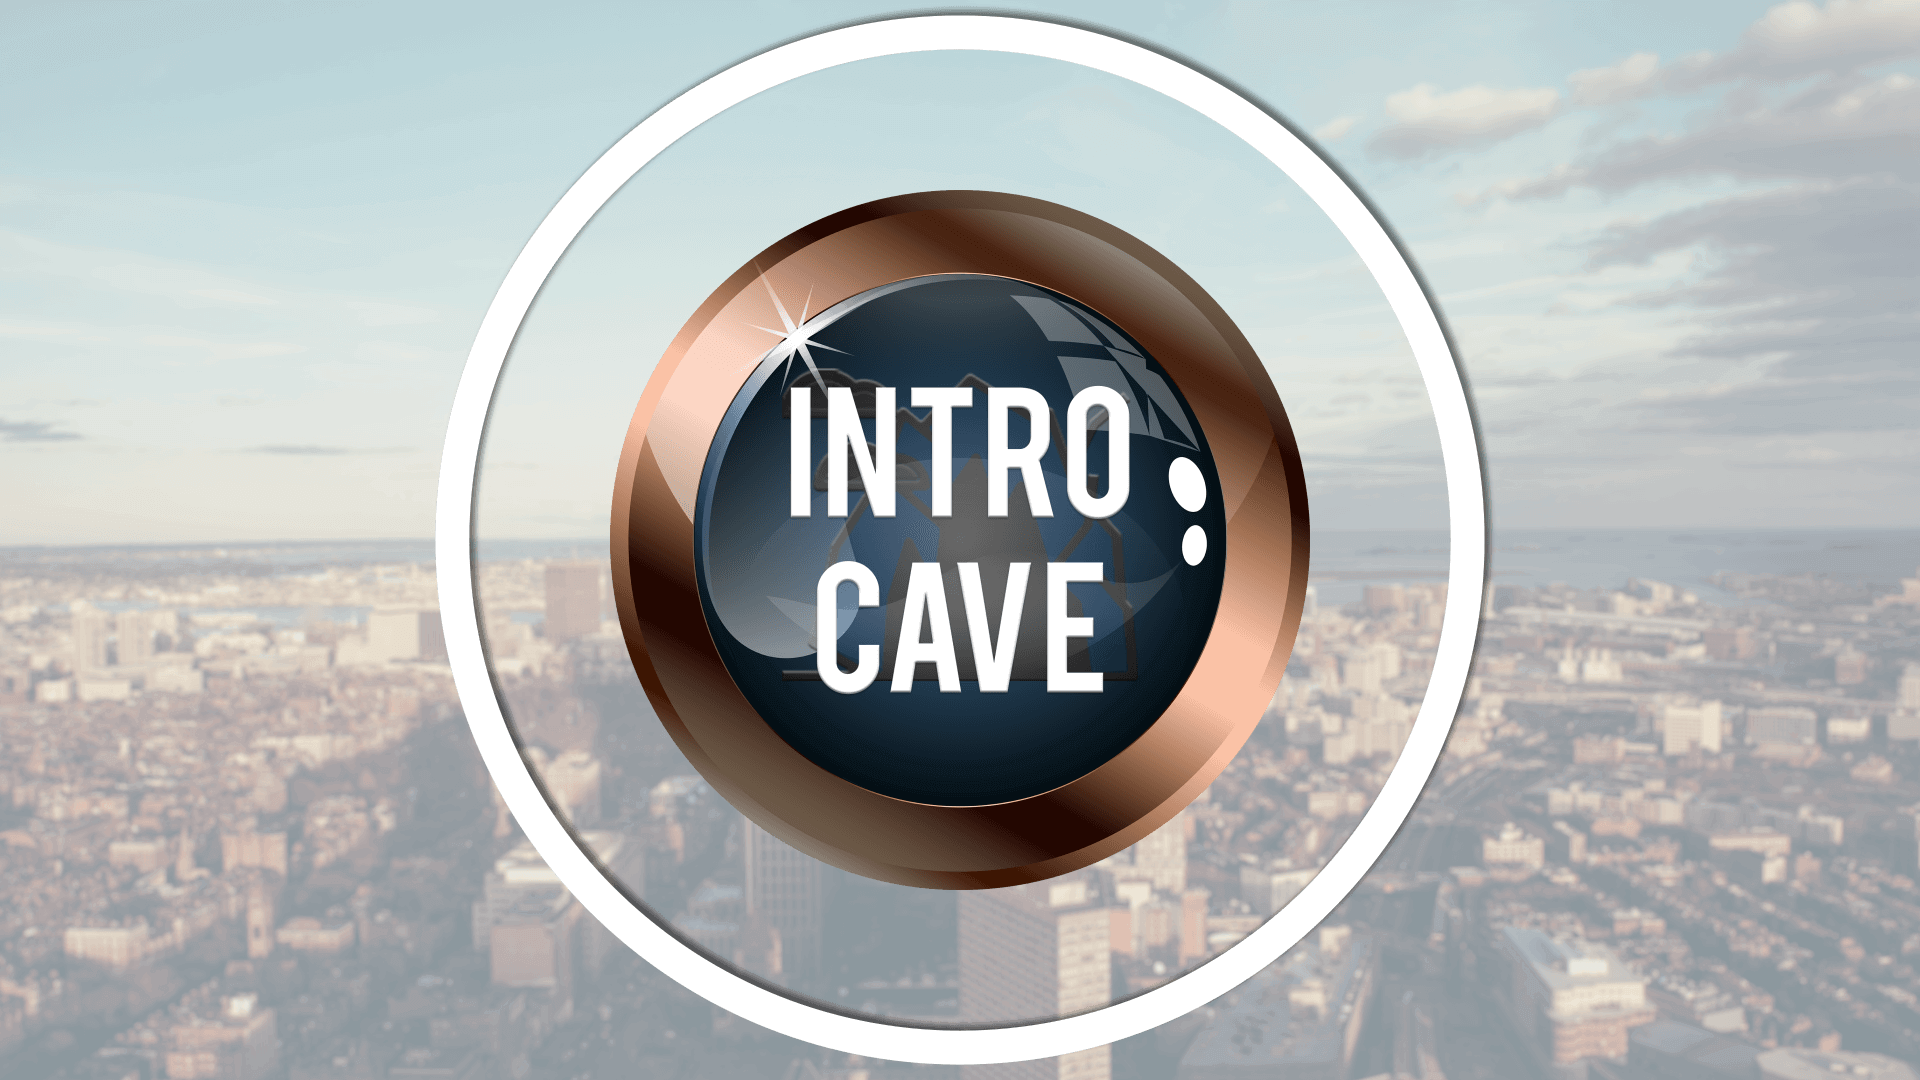 Customize Modern Metro - Logo with your own logo or image to view your free intro movie.